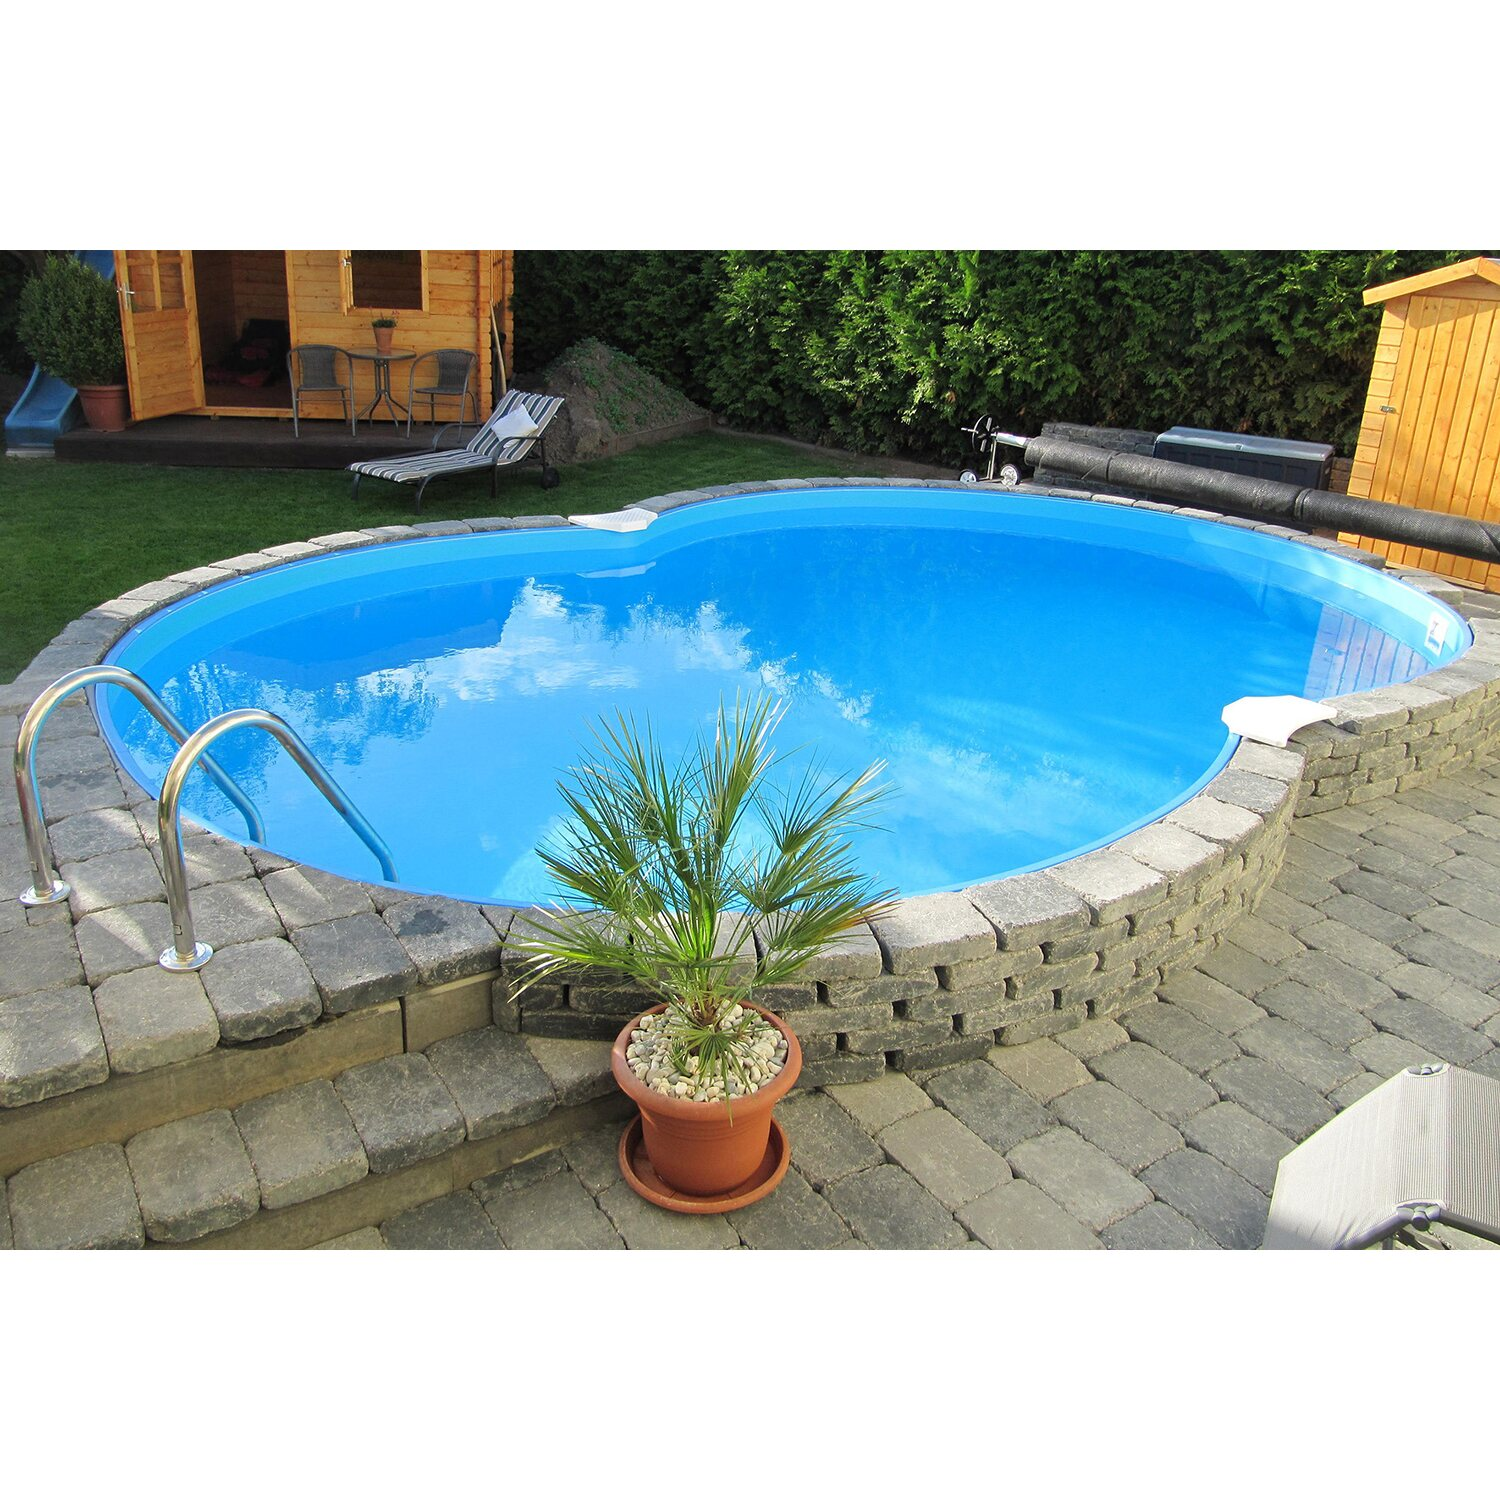 Pool set cannes halbhoch einbaubecken achtform 625 cm x for Obi pool set